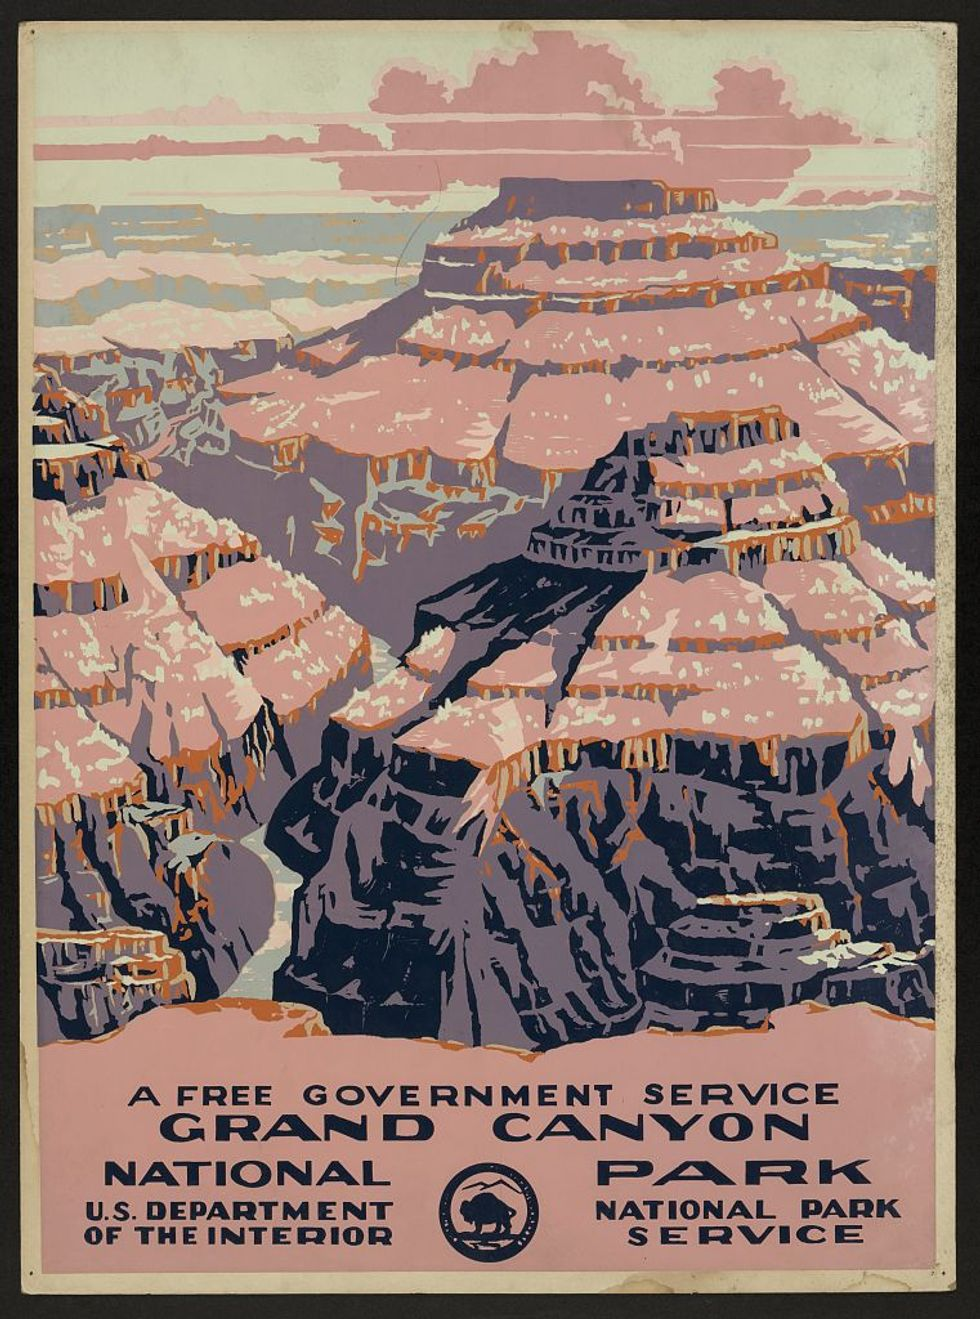 WPA poster of the Grand Canyon